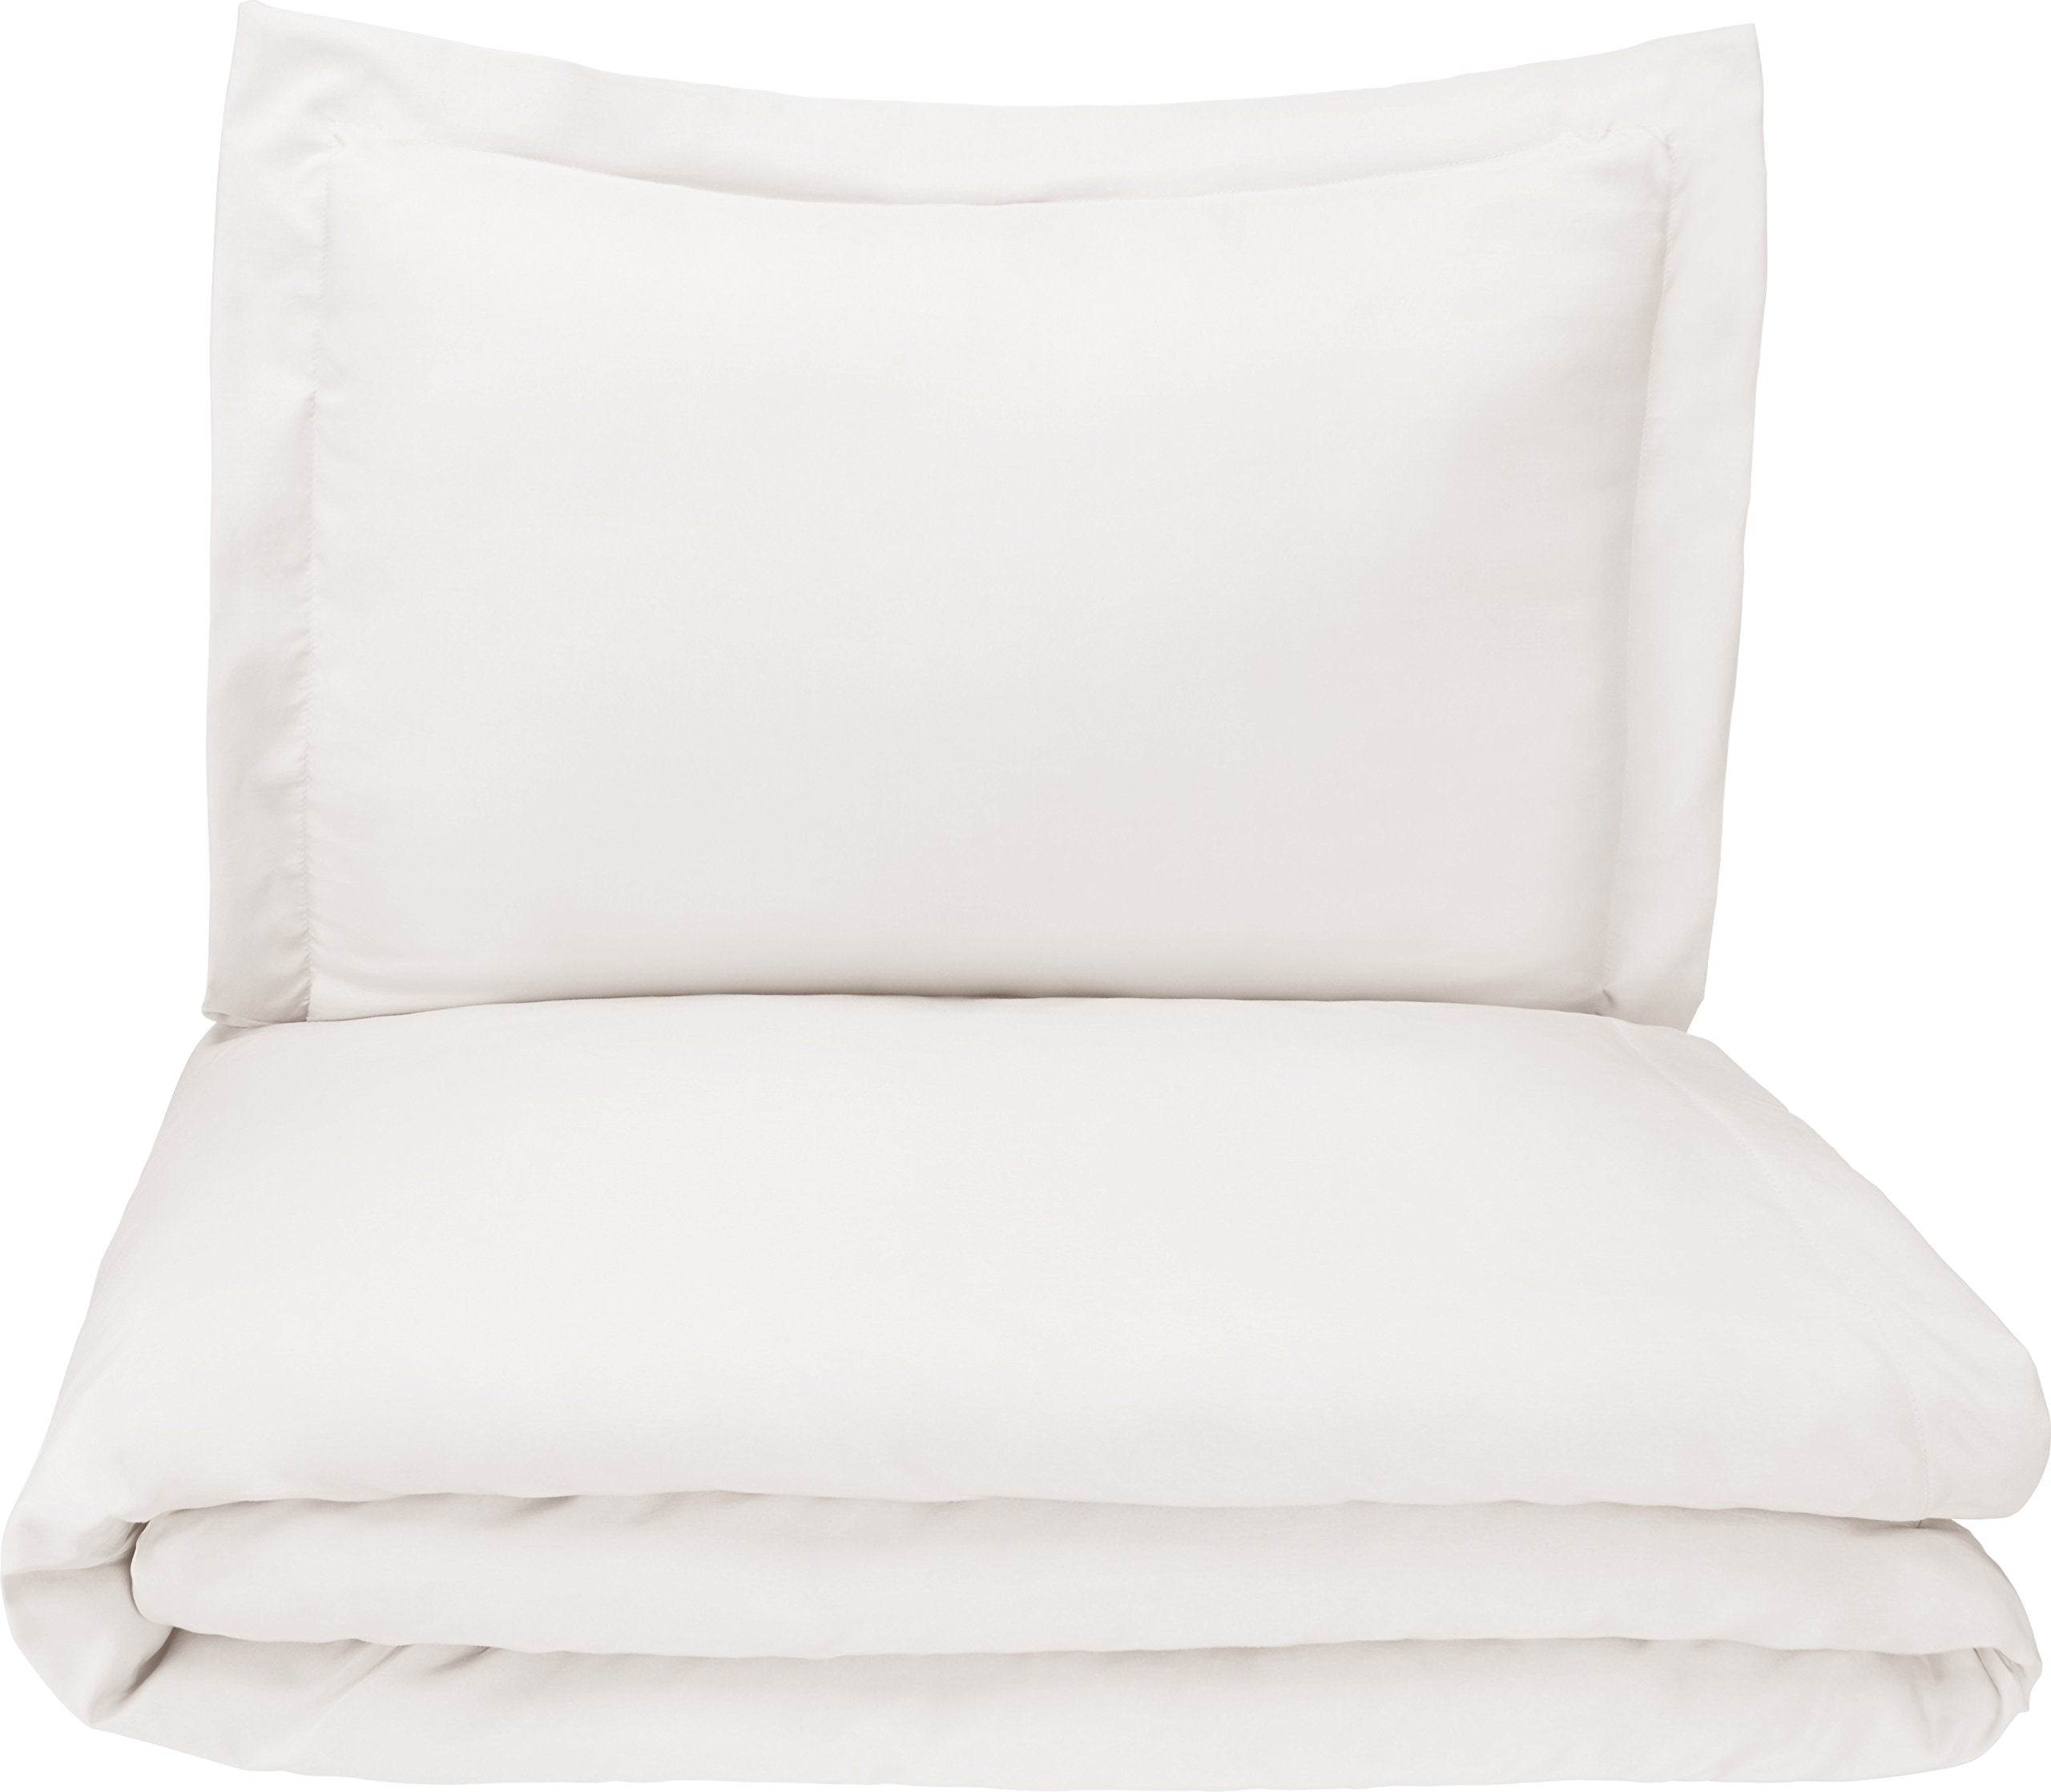 Microfiber Duvet Cover Set - Lightweight and Soft - Twin/Twin XL, Cream